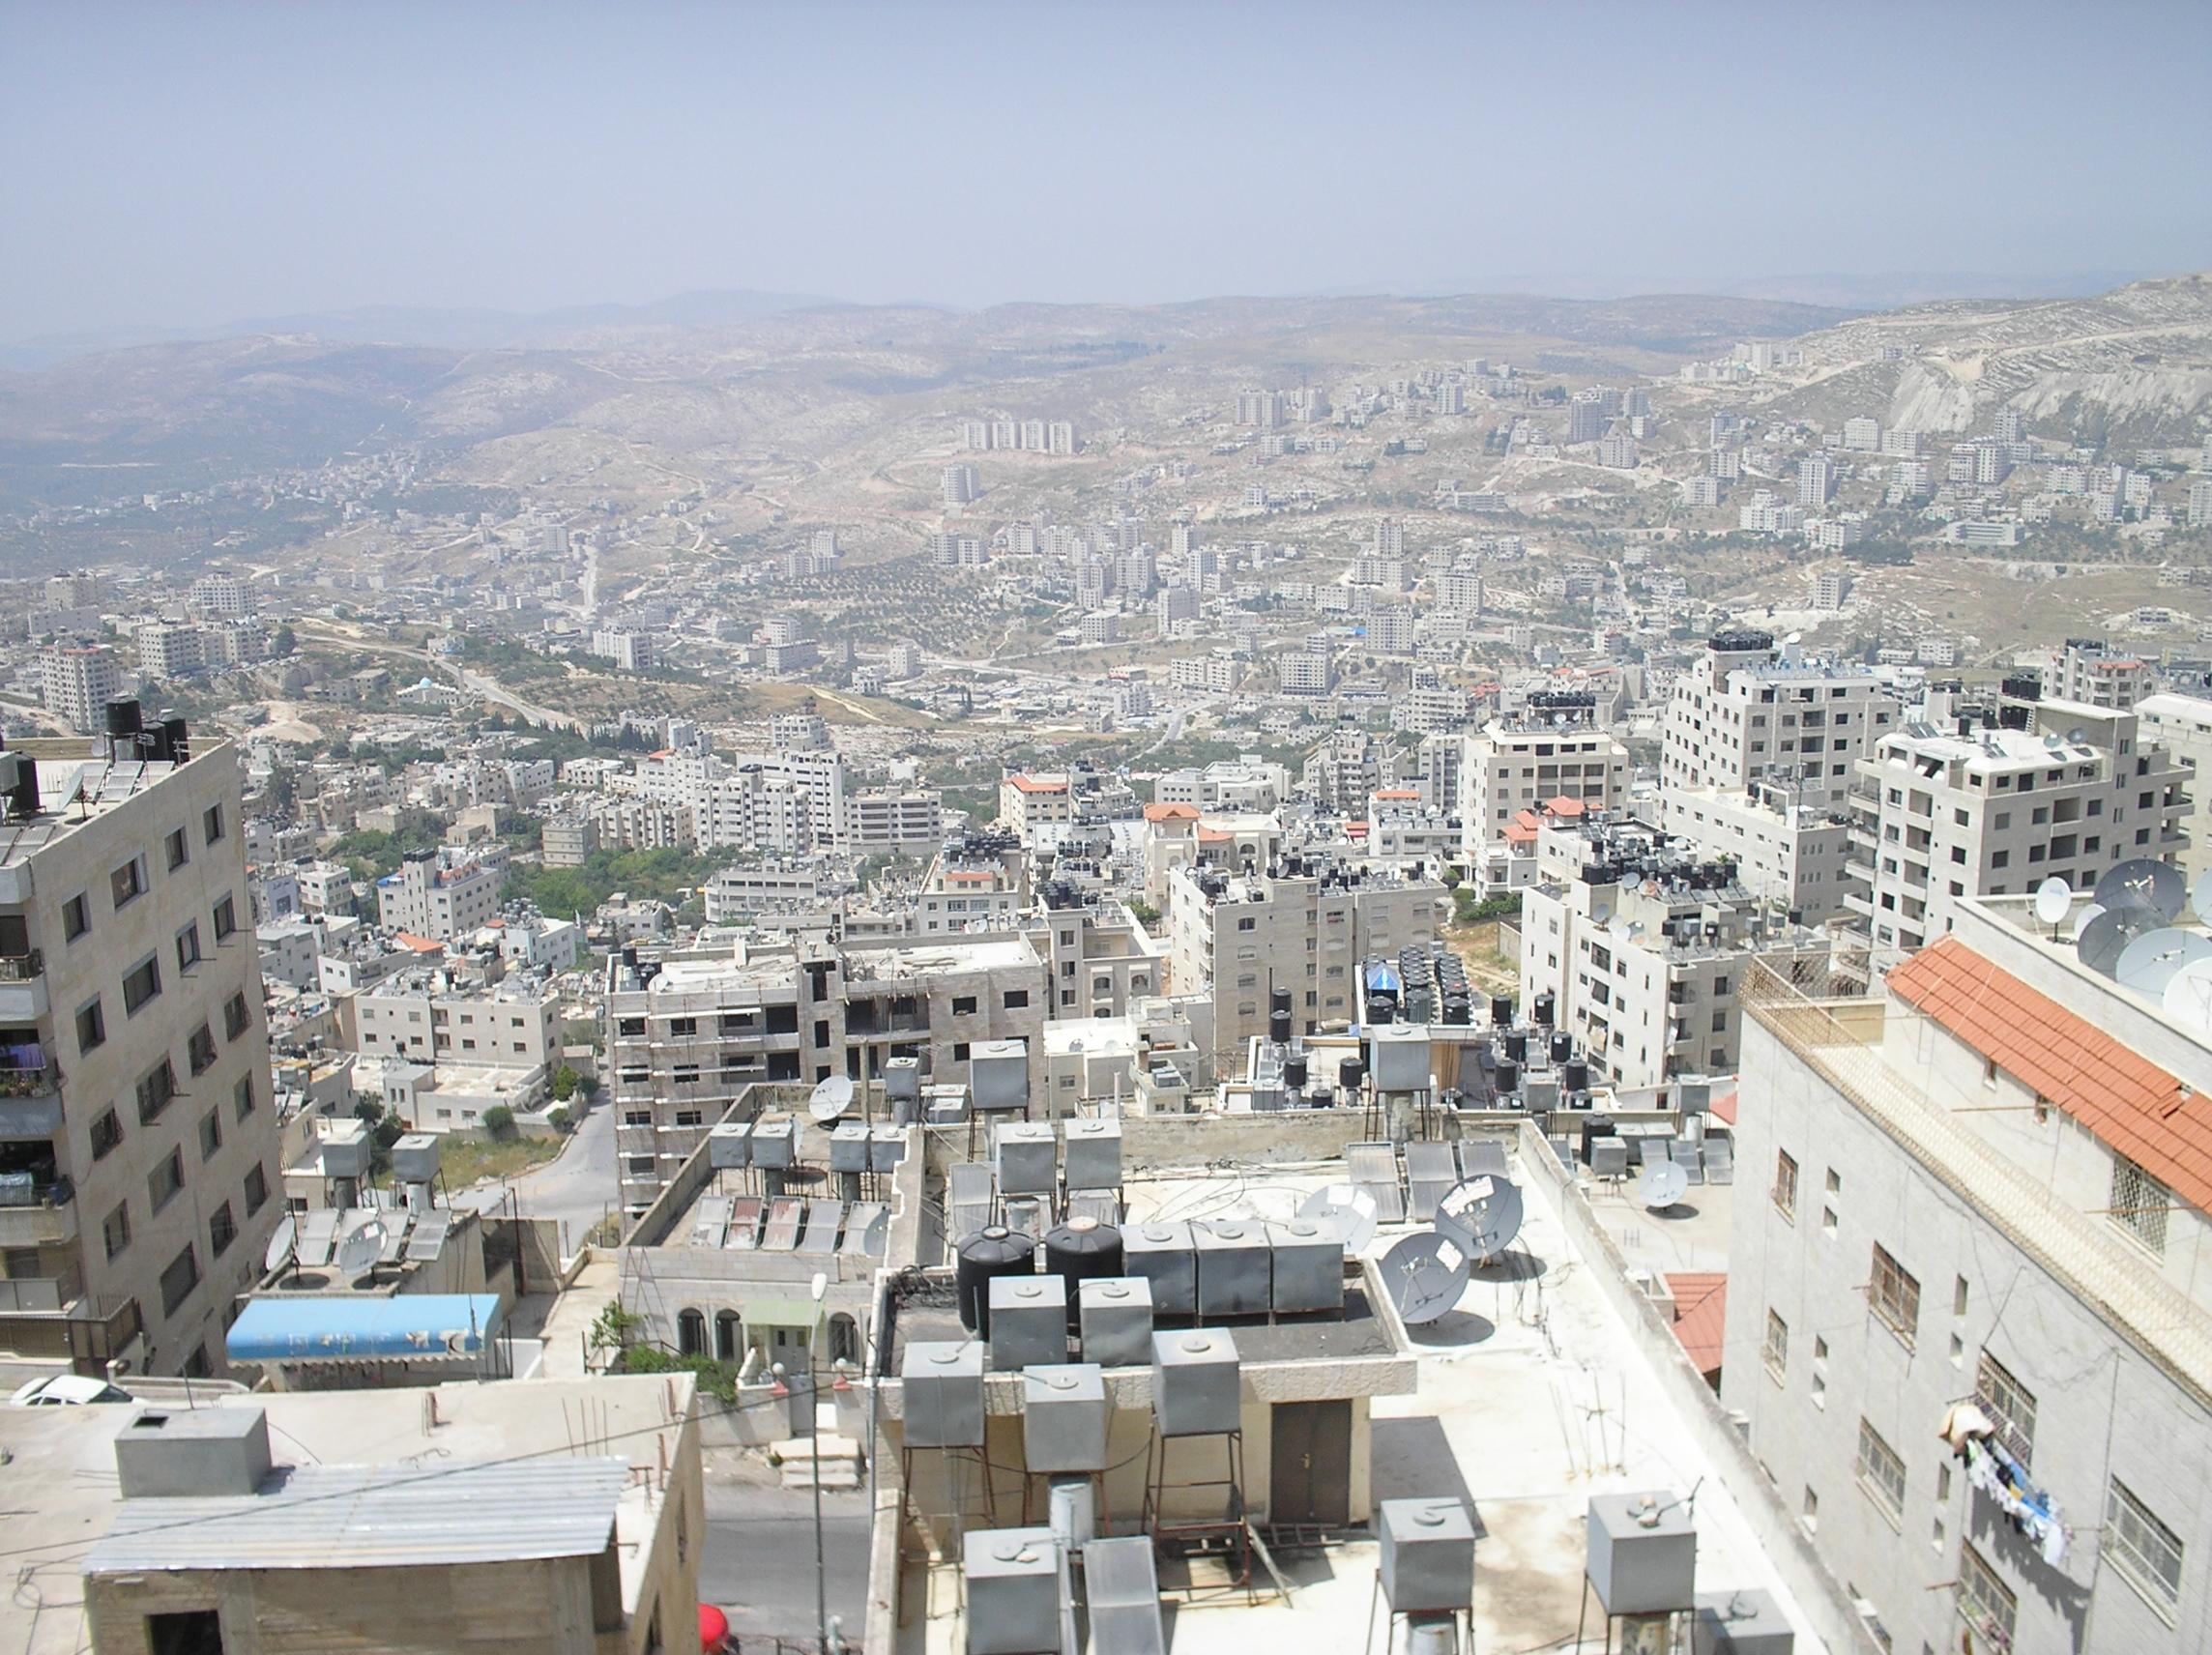 Nablus - نابلس : General view of the city (2006)